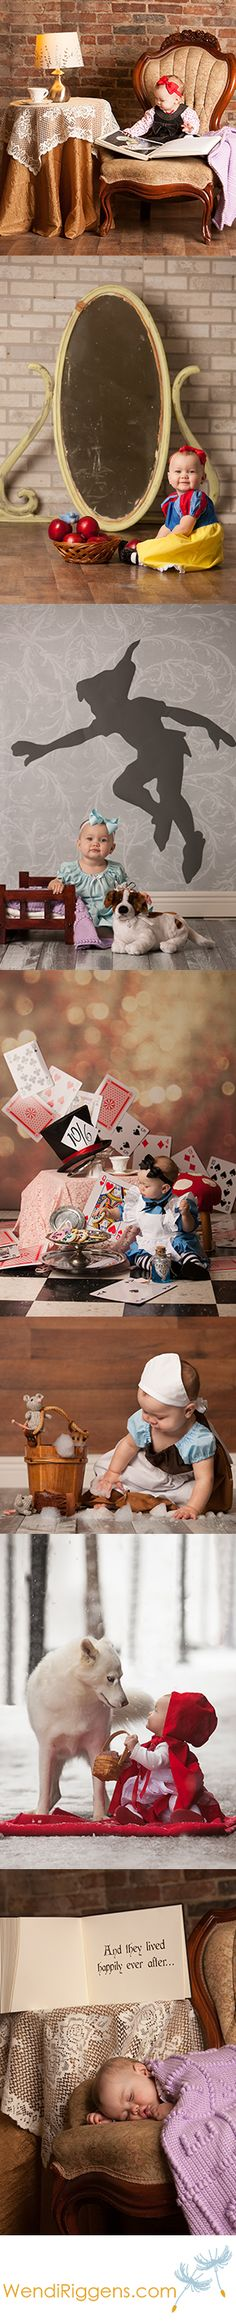 Once Upon A Time – Fairytale Baby Session – Snow White, Cinderella, Alice in Wonderland, Peter Pan & Wendy, Little Red Riding Hood & The Big Bad Wolf -